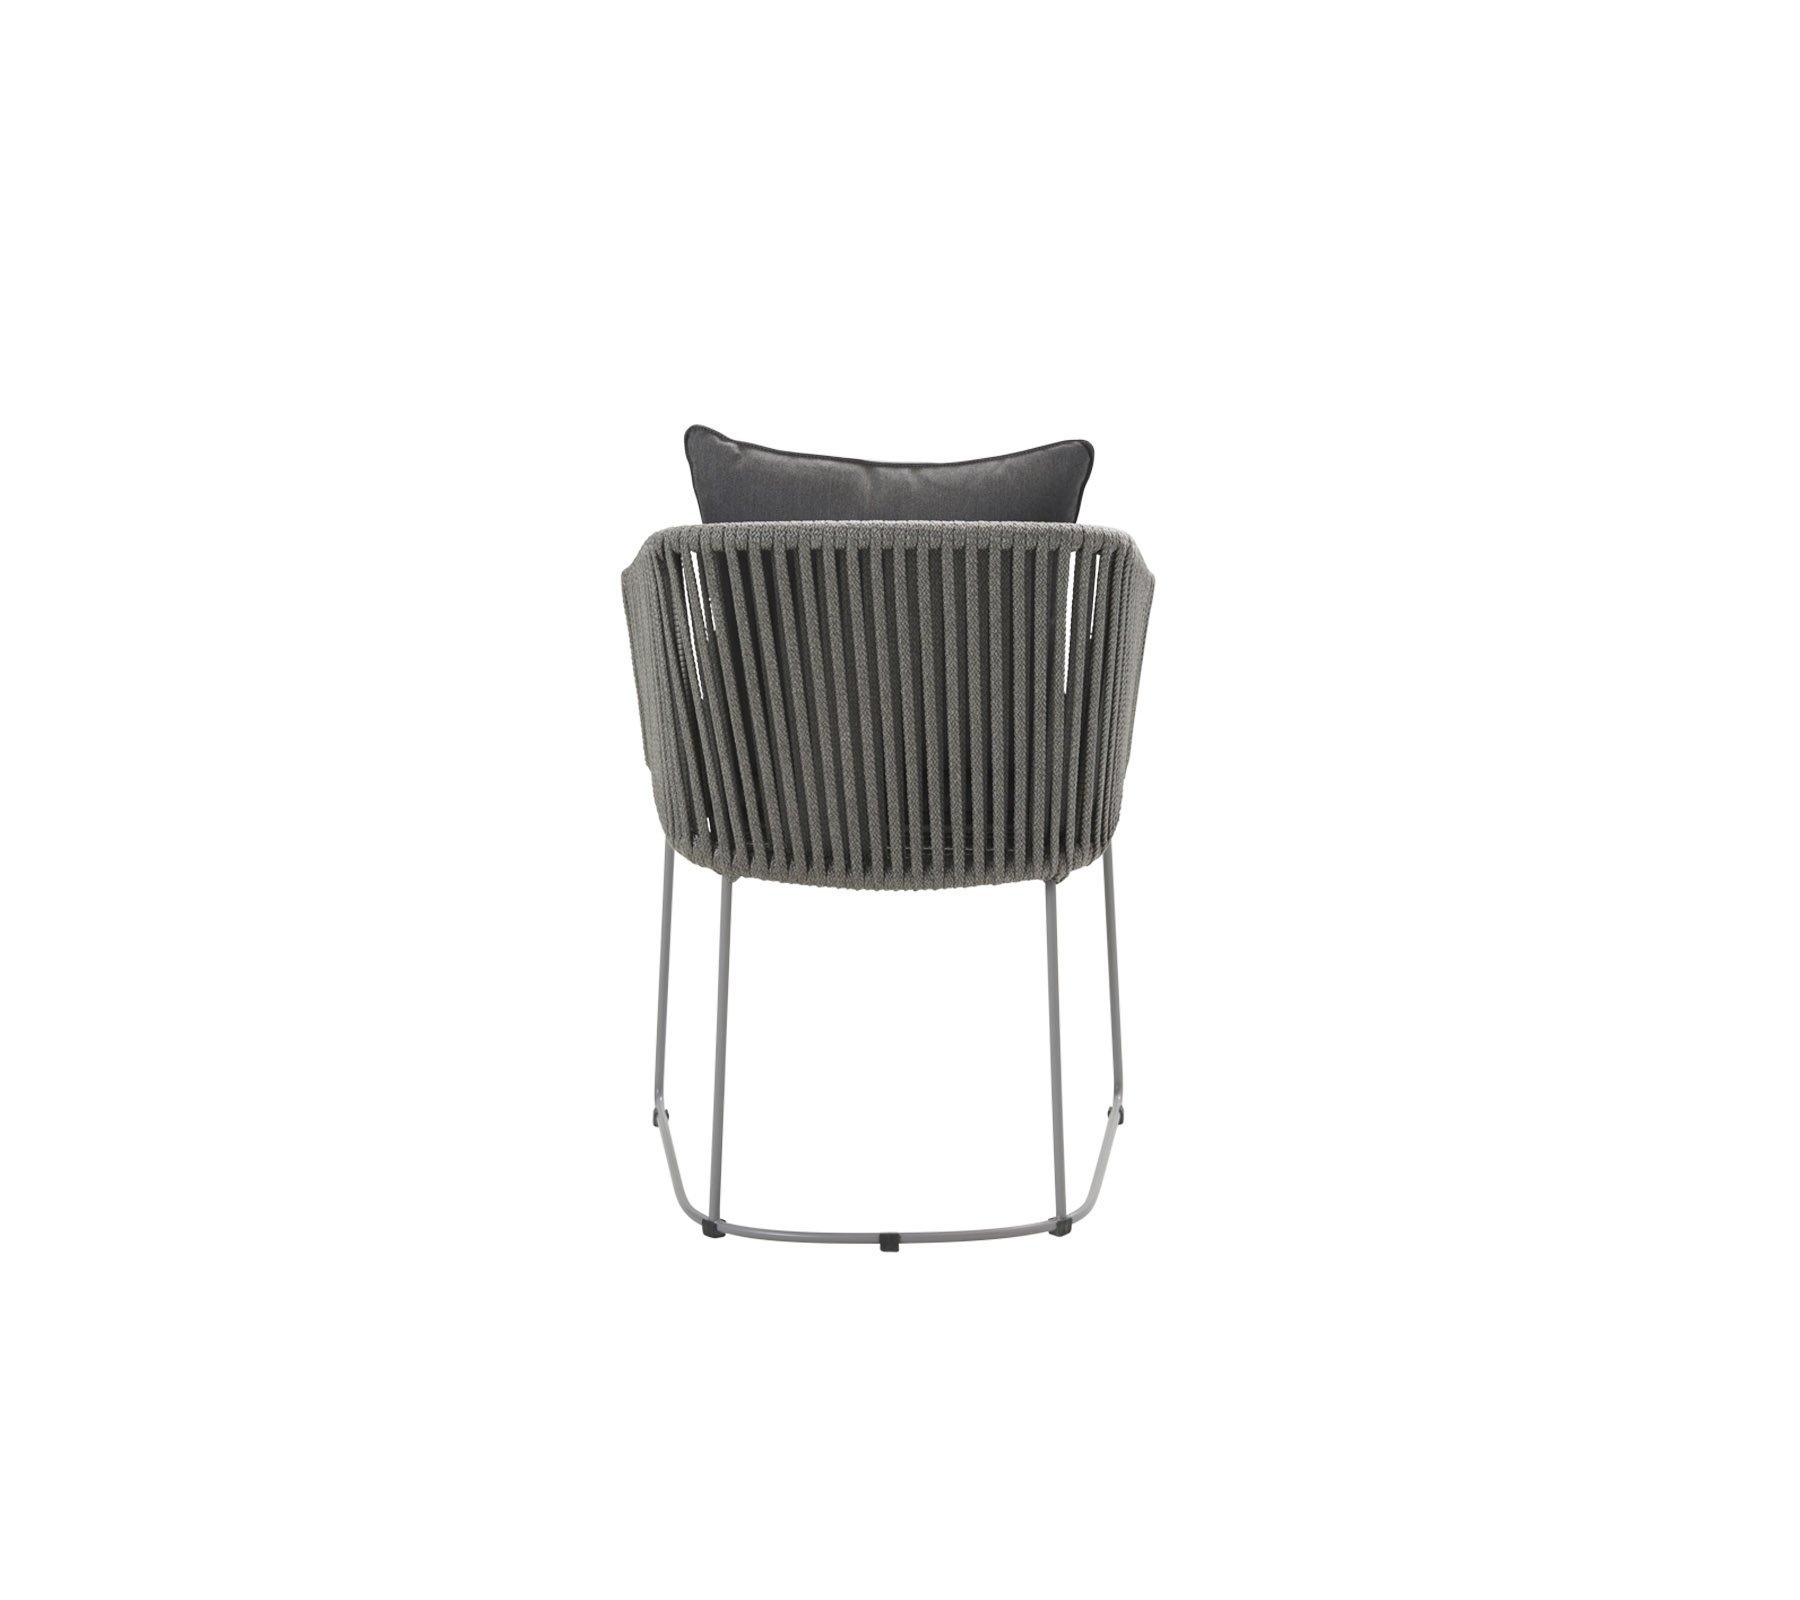 Moments Armchair from Cane-line